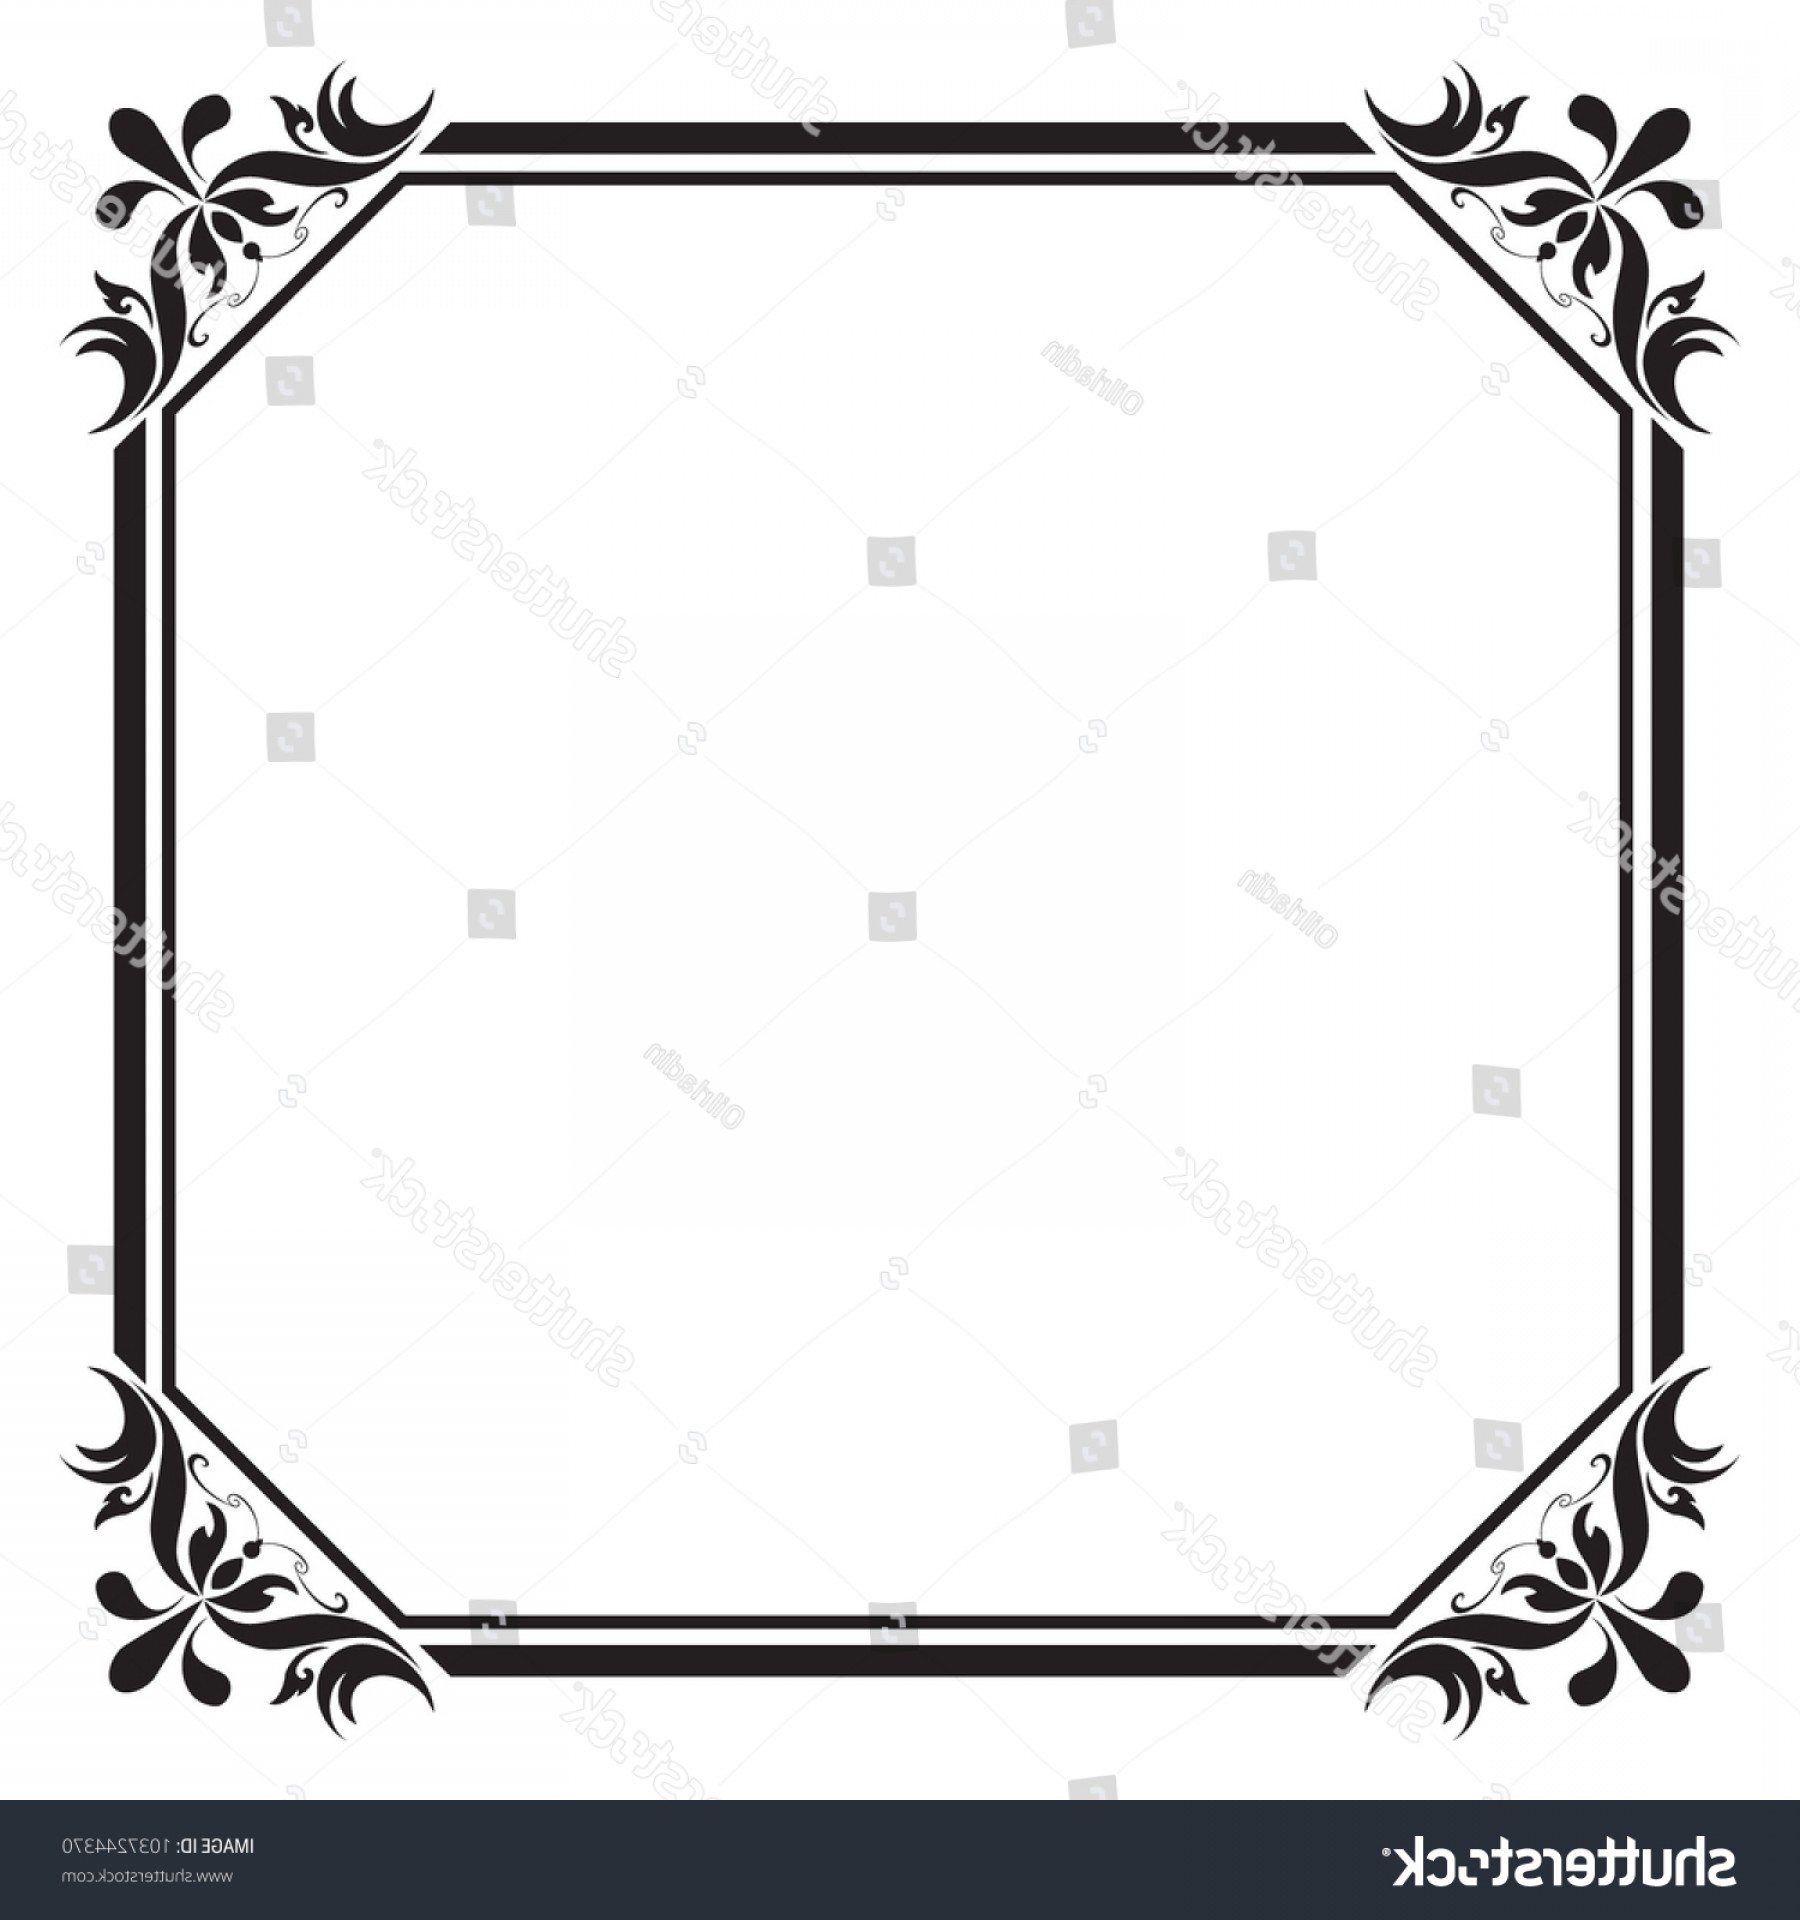 Square Black Vector Border Frame: Decorative Frame Border Square Black White